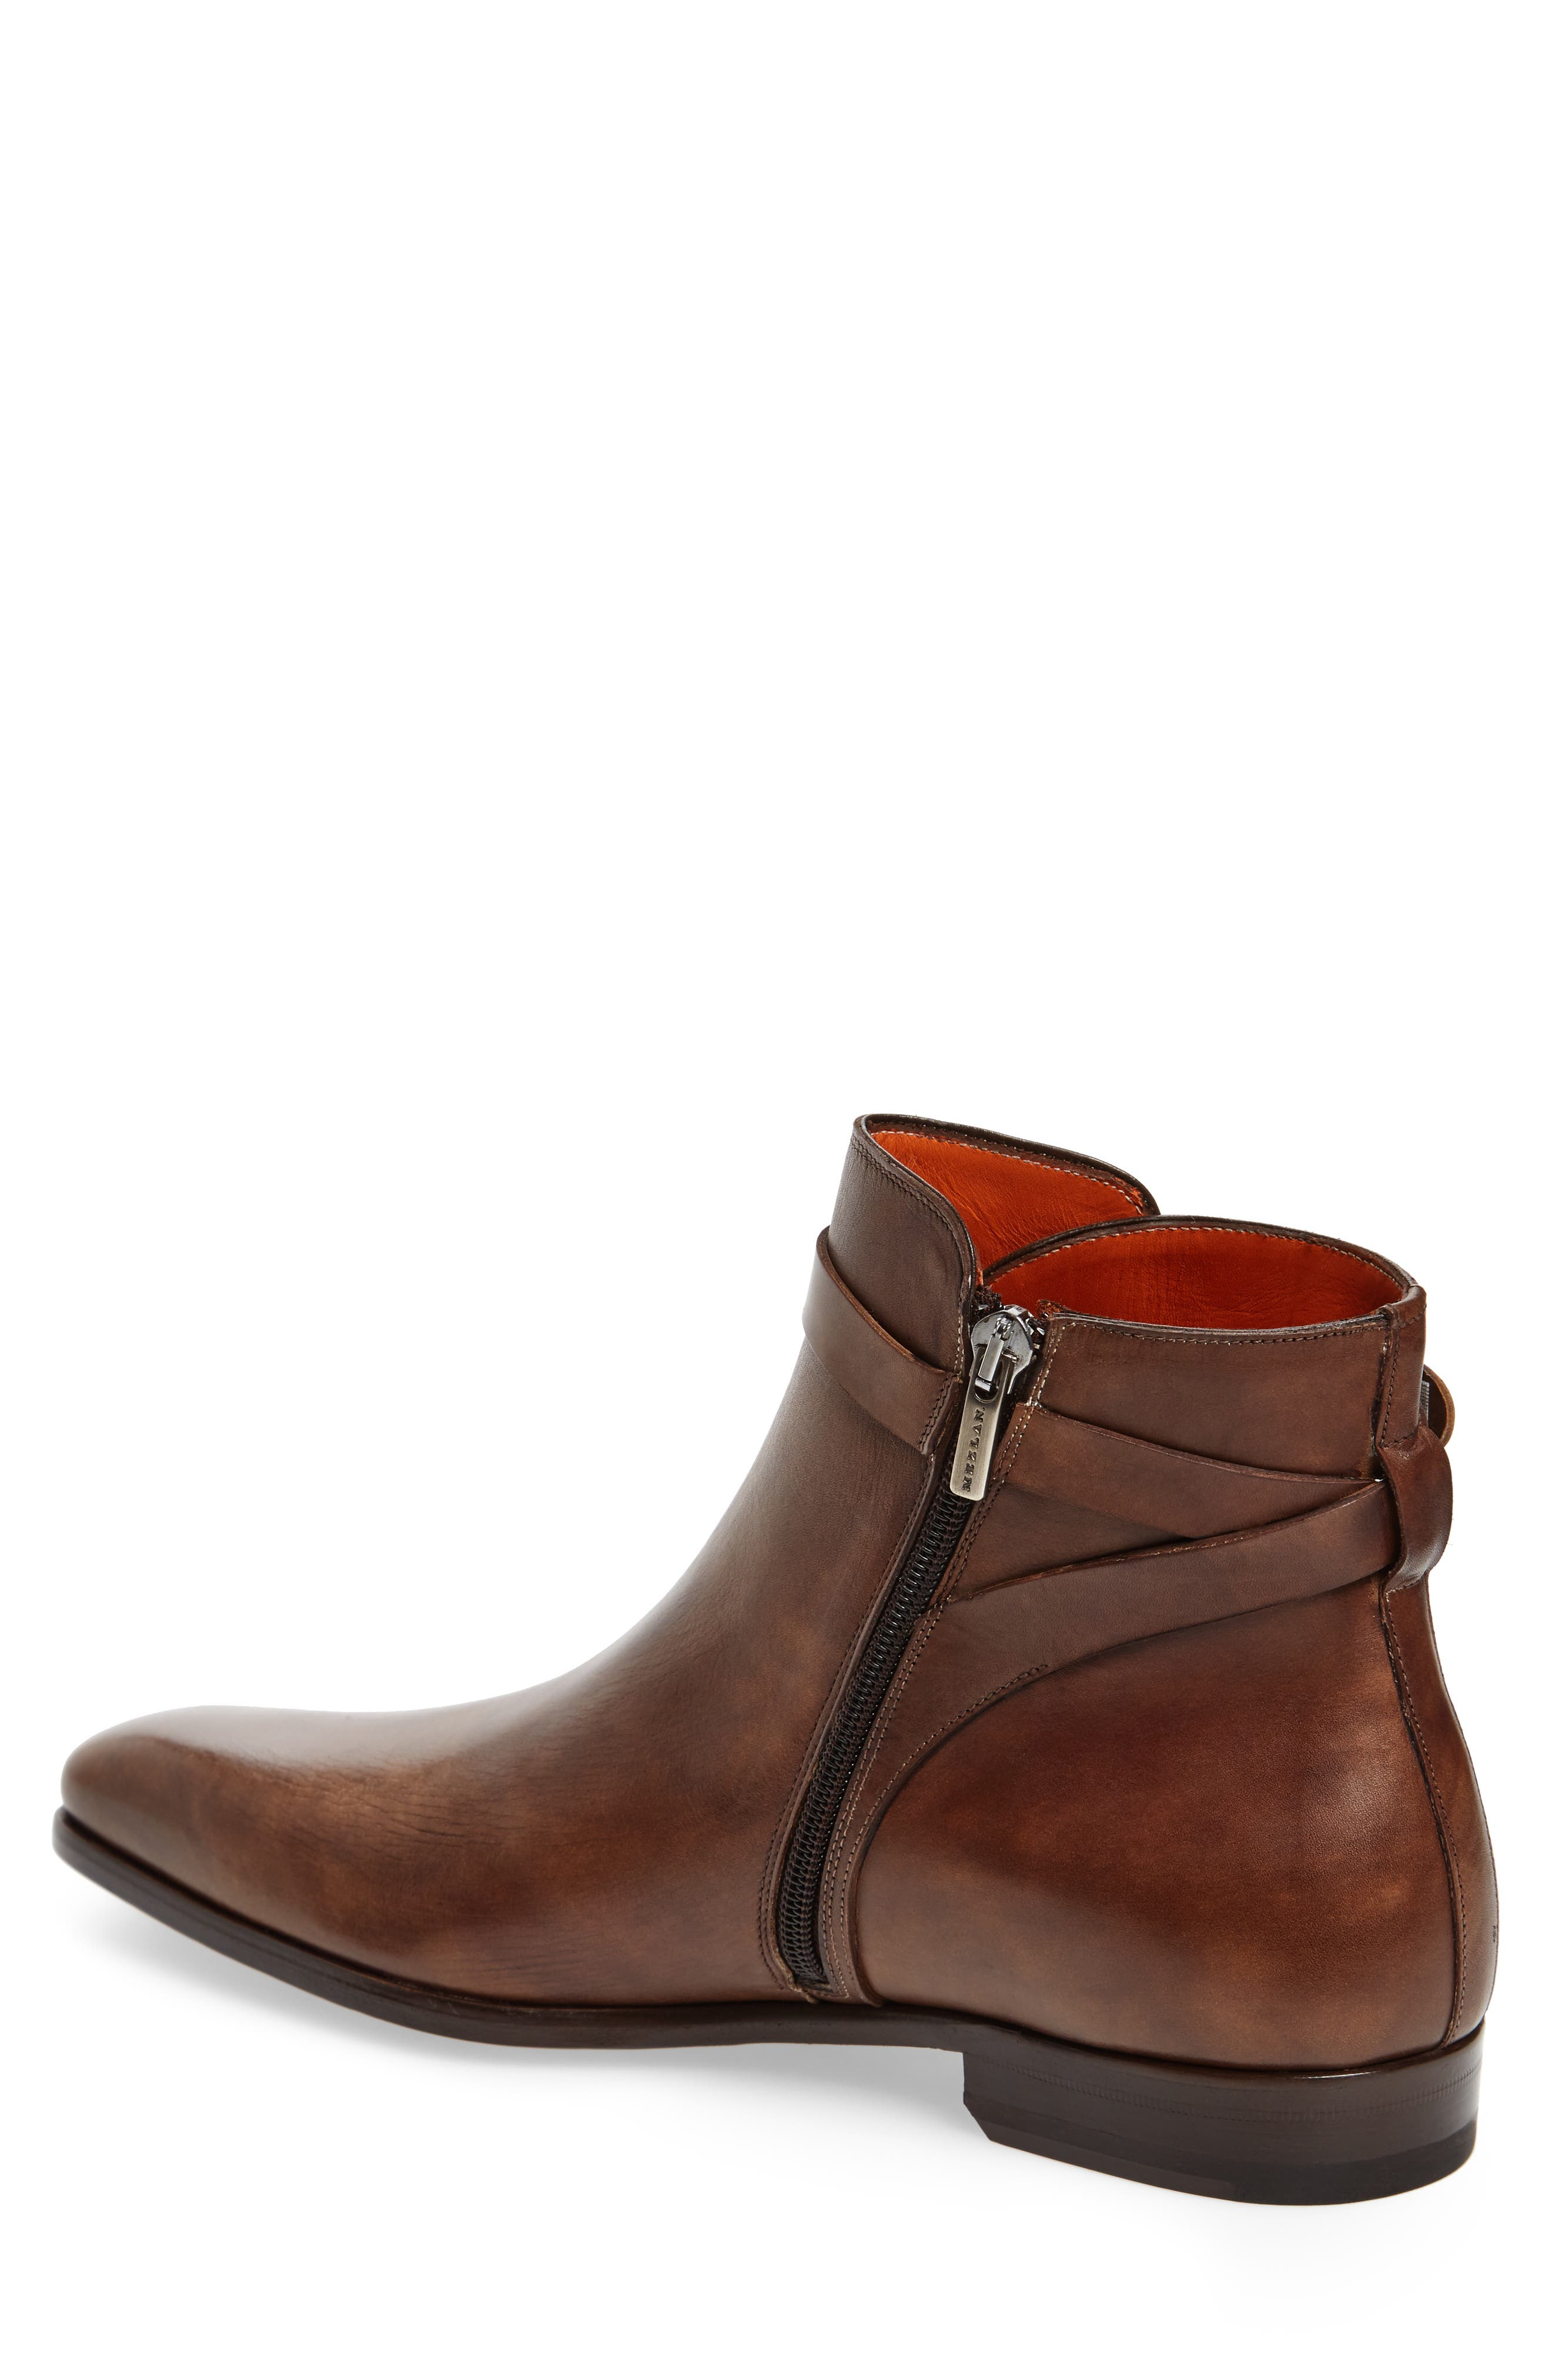 Viso Zip Boot,                             Alternate thumbnail 2, color,                             TAUPE LEATHER